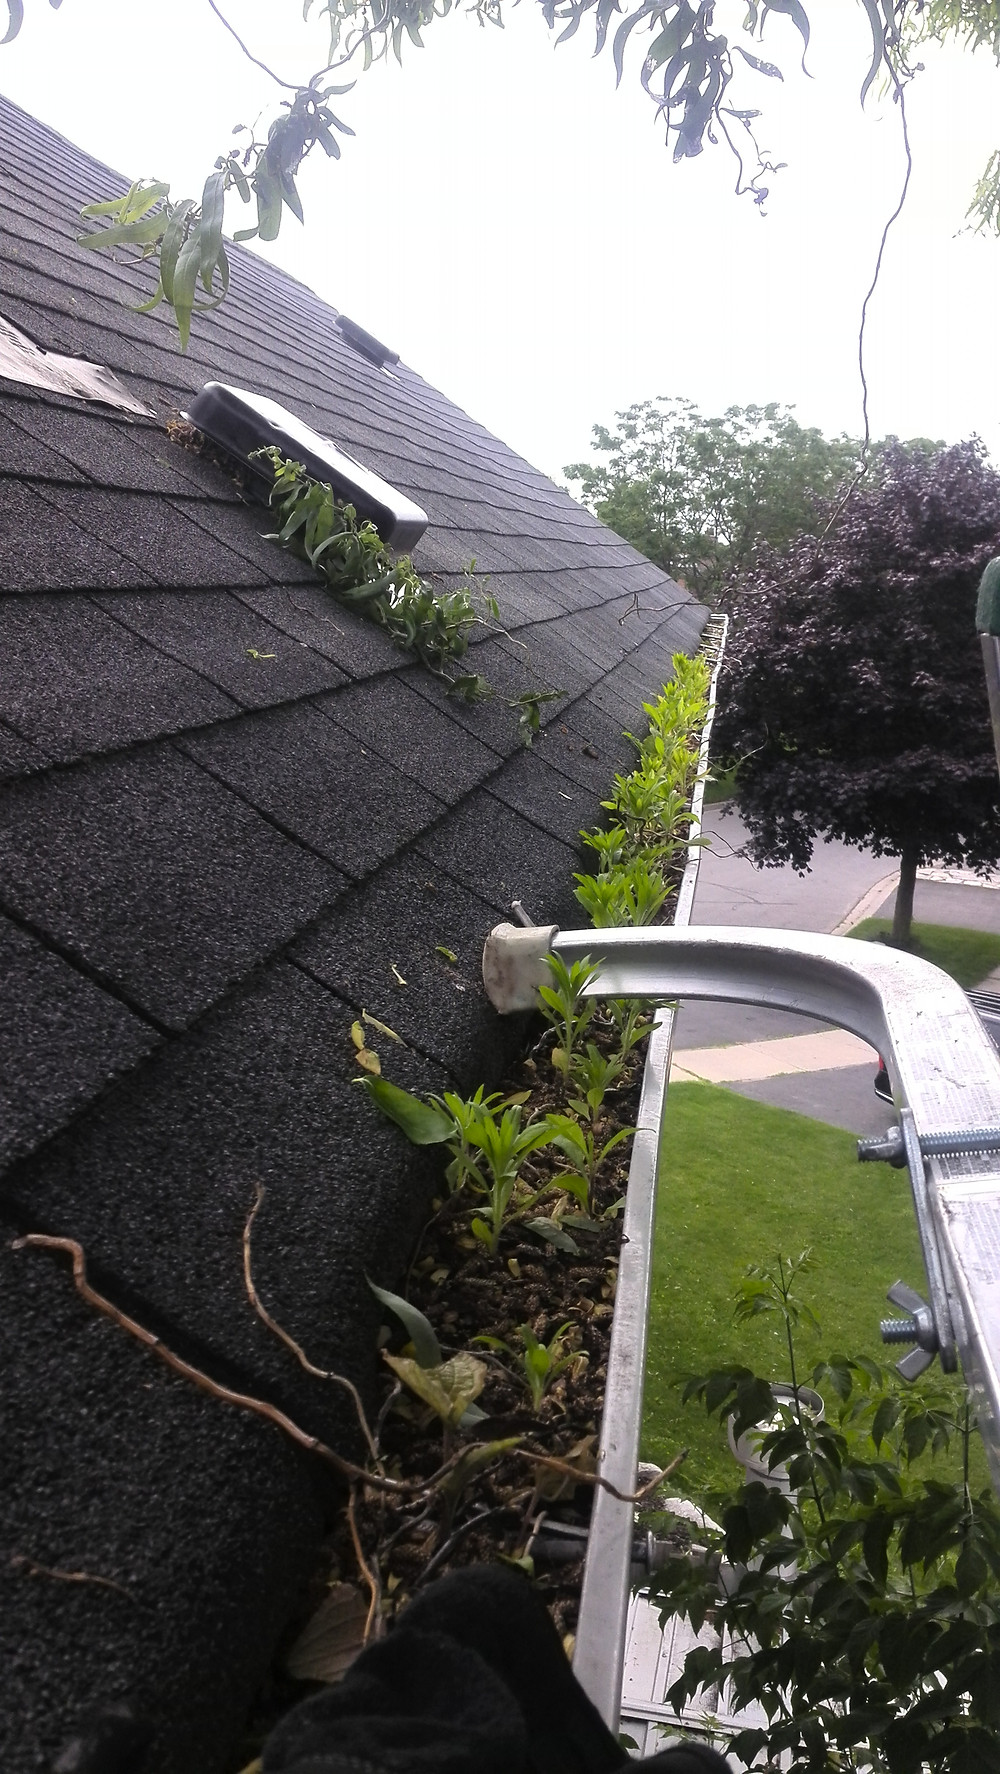 Dirty eavestrough - no leafguard on it - 1-855-wanna-reno?'s job